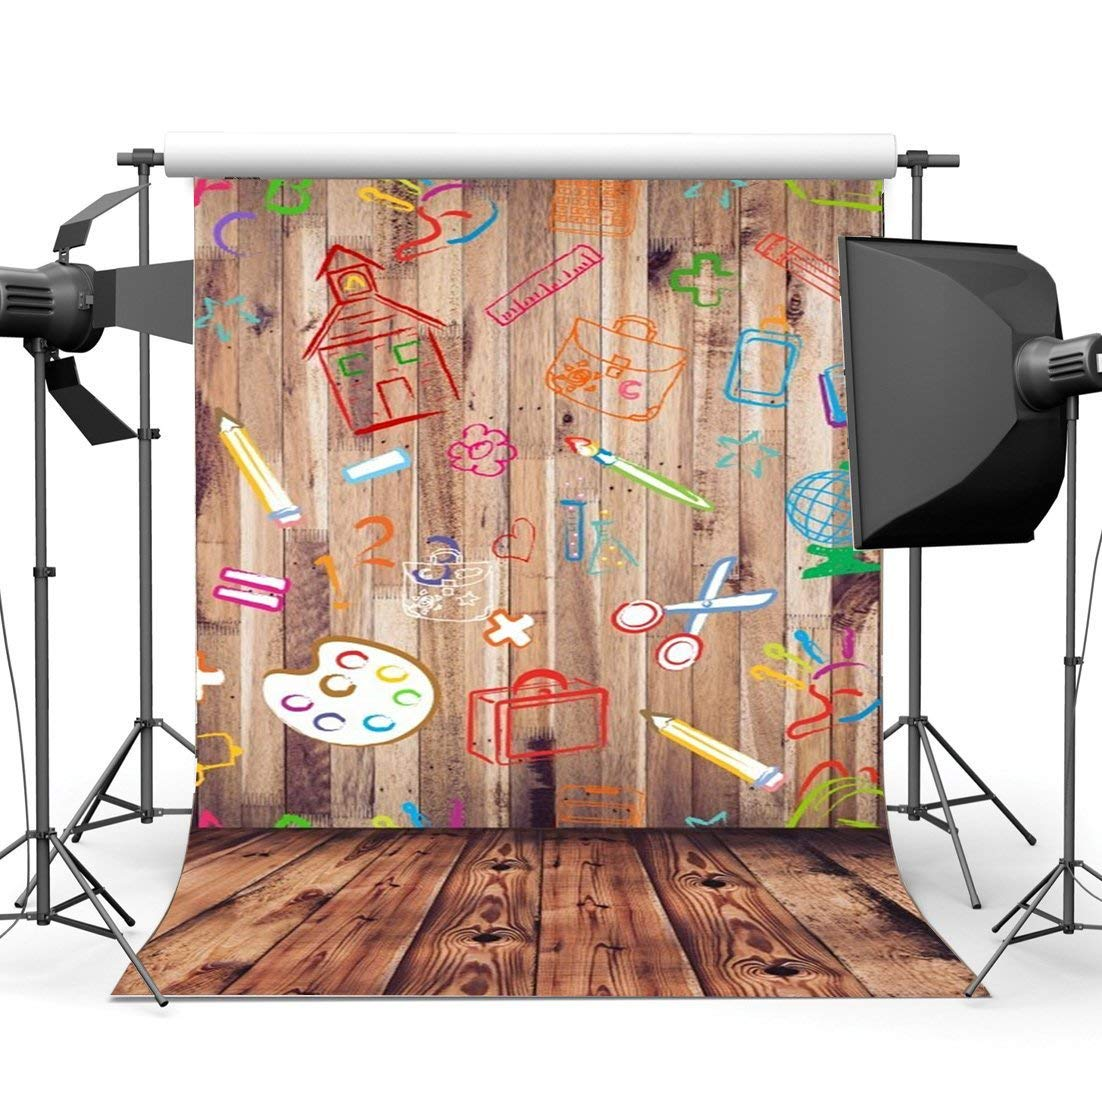 Gladbuy Back to School Backdrop 3X5FT Vinyl Graffiti Artistic Hand Chalk Drawing on Wood Plank Backdrops Stripes Wood Floor Photography Background for Boys Girls School Party Photo Studio Props BL44